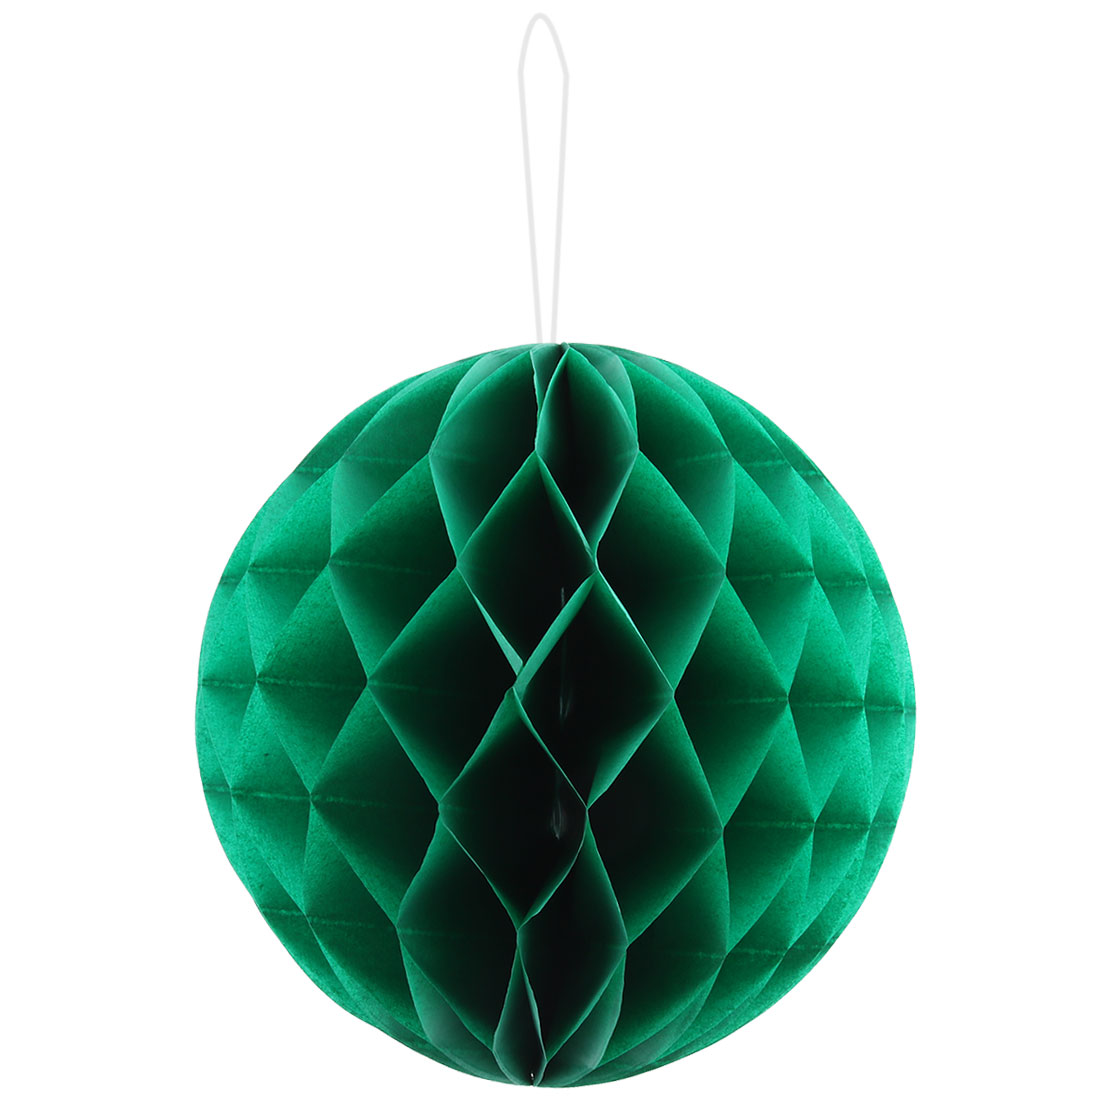 Paper Foldable DIY String Hanging Lantern Lamp Decor Honeycomb Ball Green 12 Inch Dia